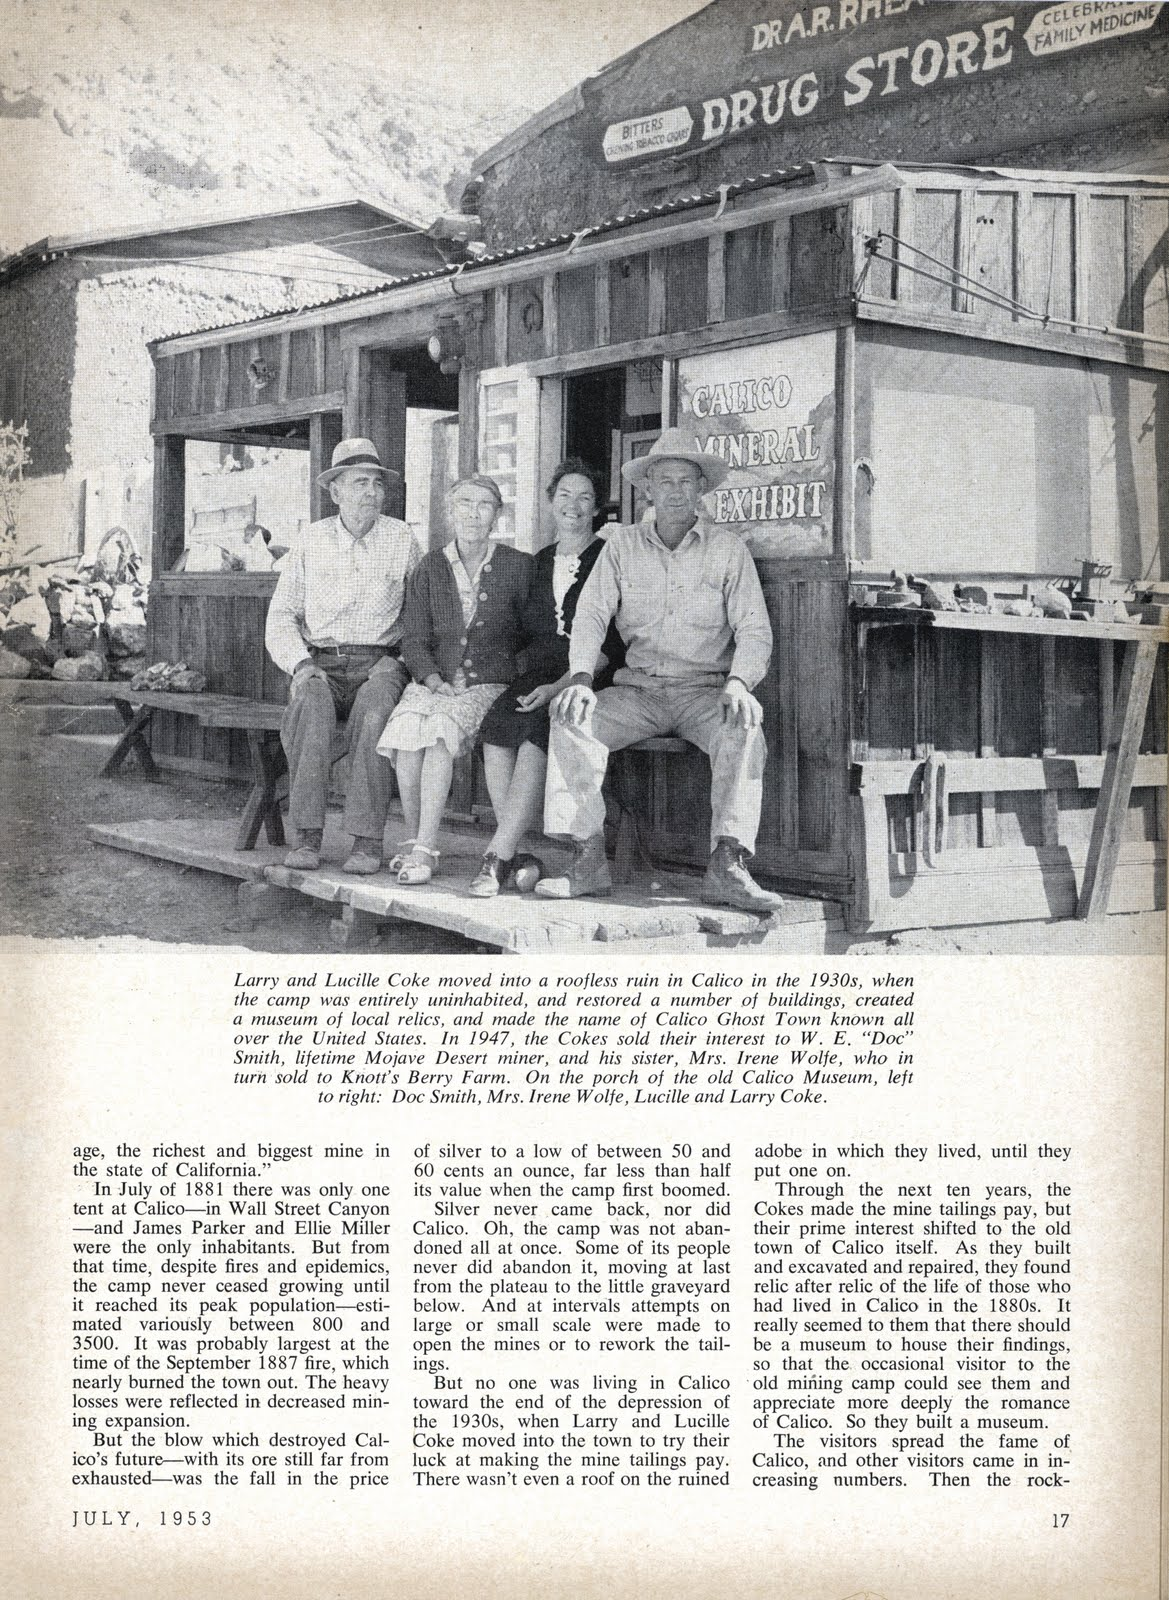 walter knott The history of knott's berry farm in 1920, walter and cordelia knott moved their young family to 20 acres of land near highway 39 in buena park, california, determined to make a success of farming.